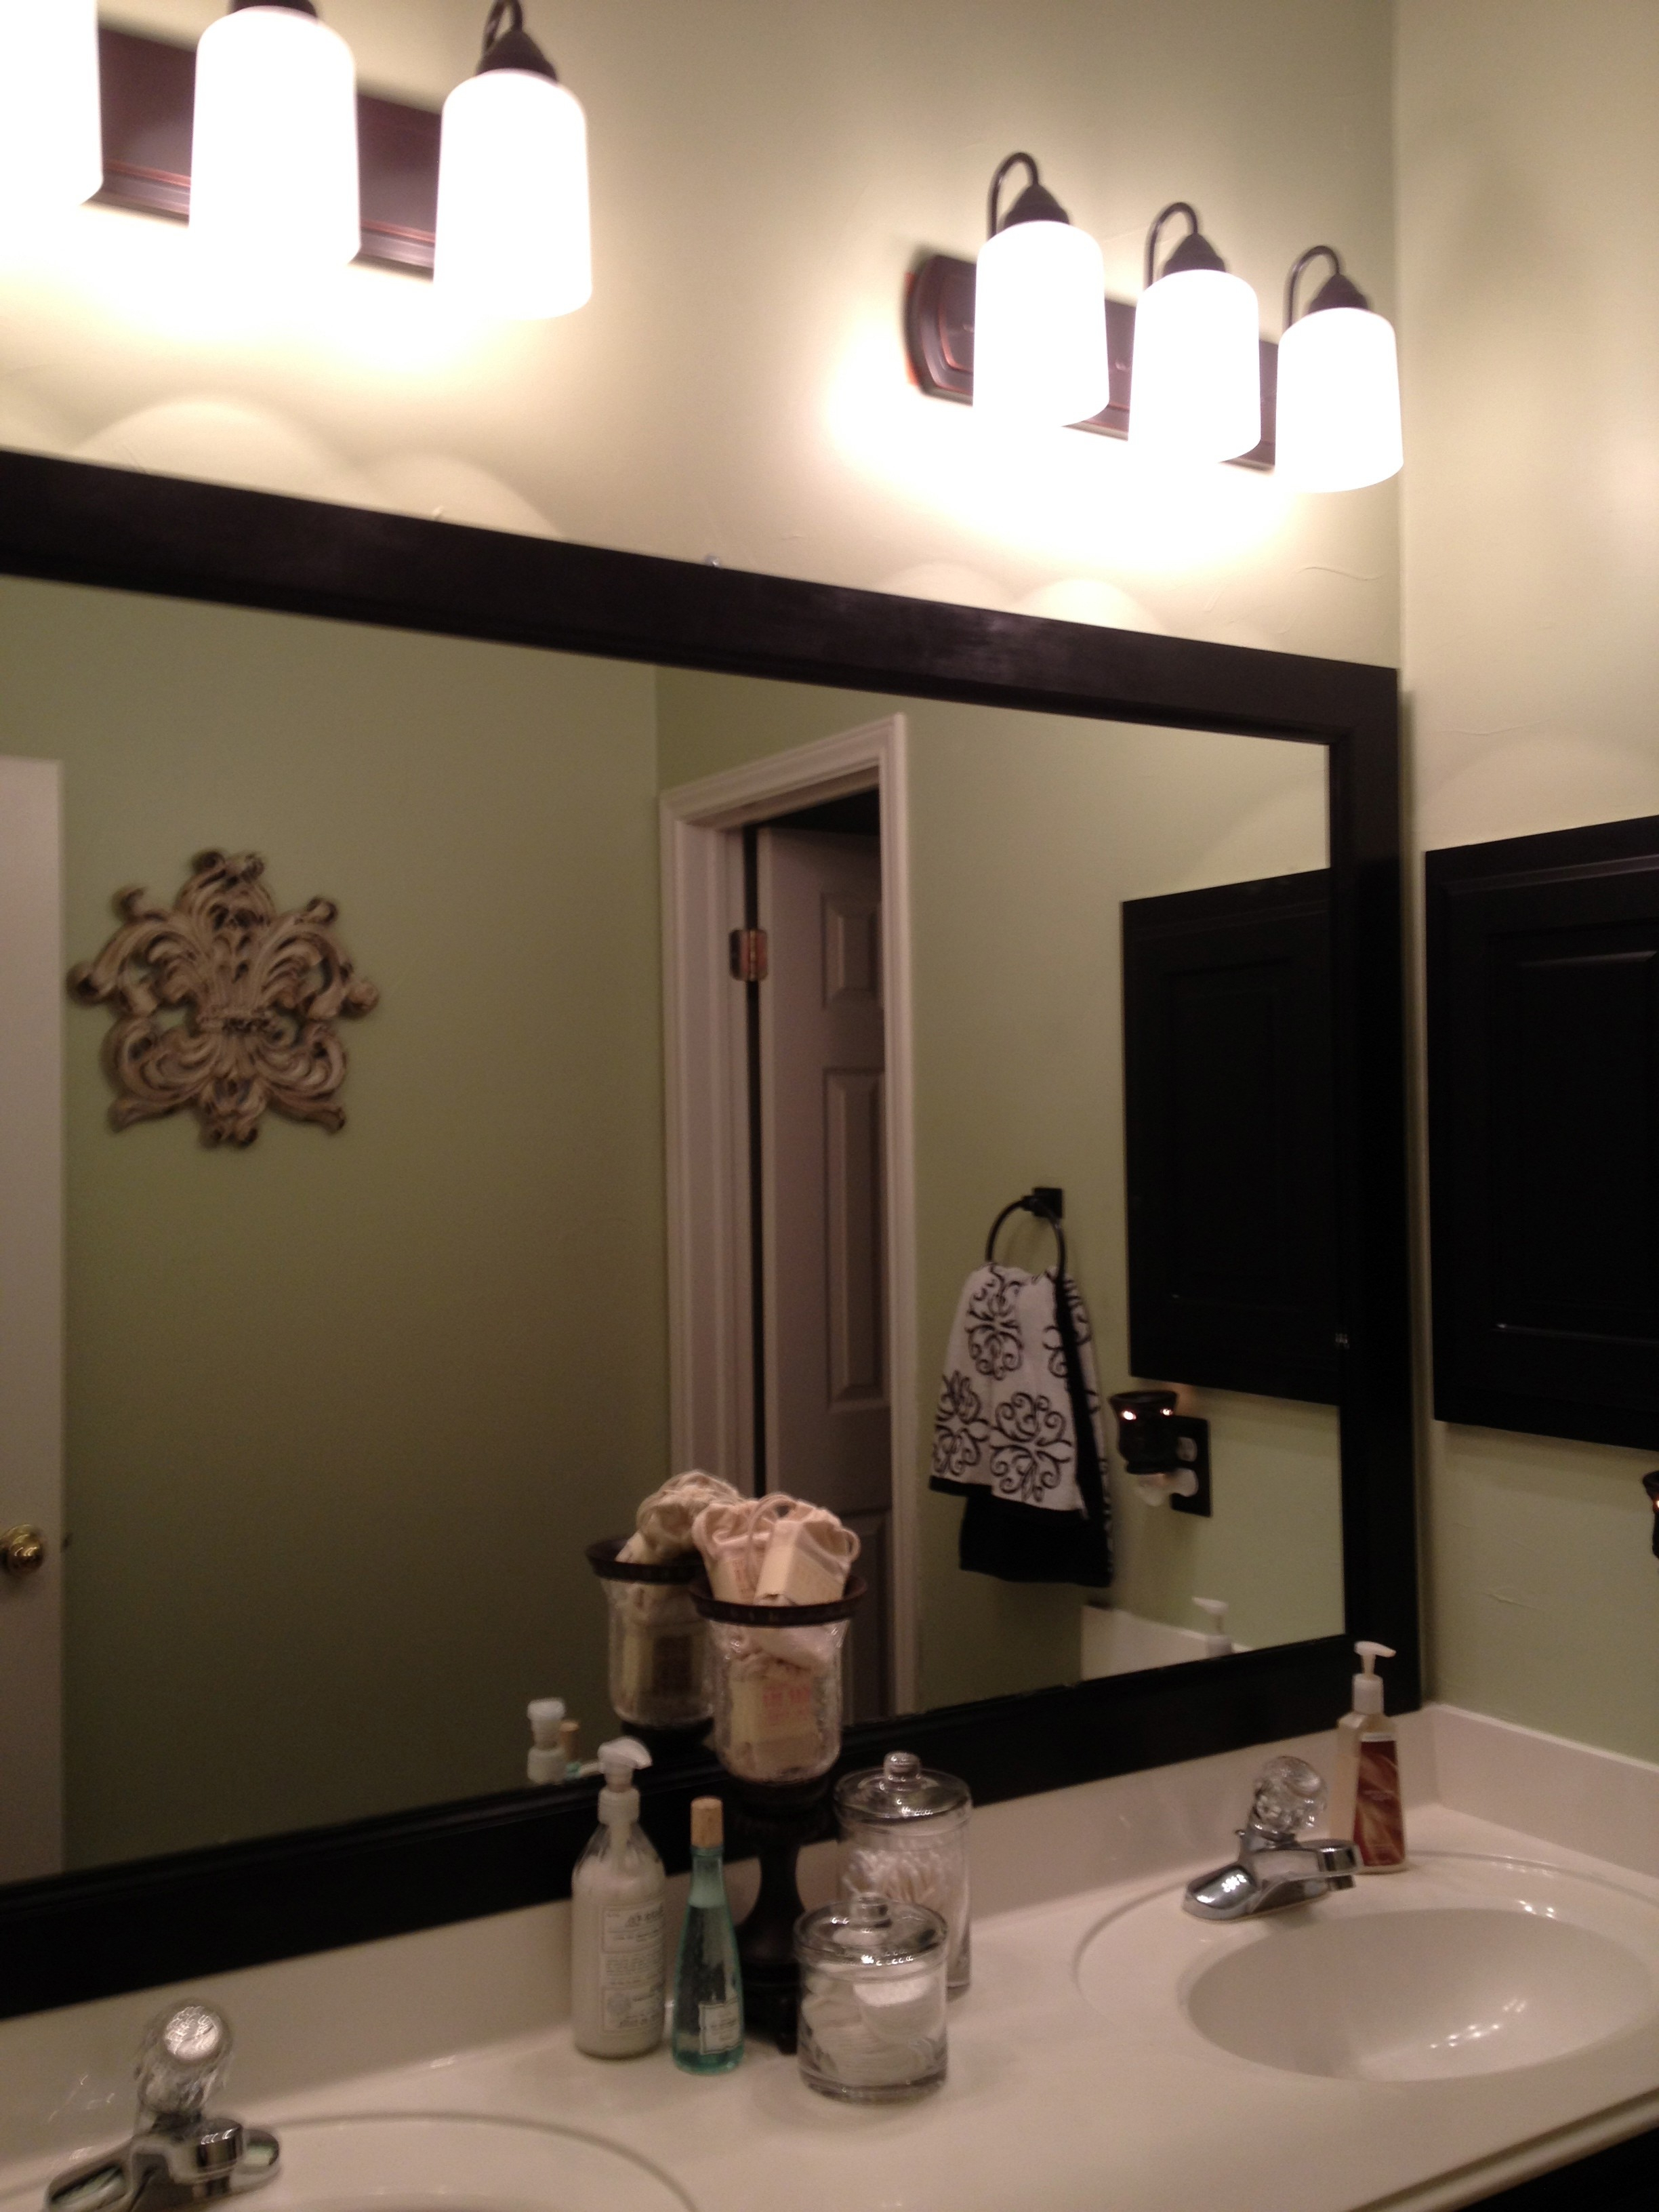 Best And Newest Frame Bathroom Wall Mirrors Within Exclusive Design Frames For Bathroom Wall Mirrors Diy Framed (View 13 of 20)